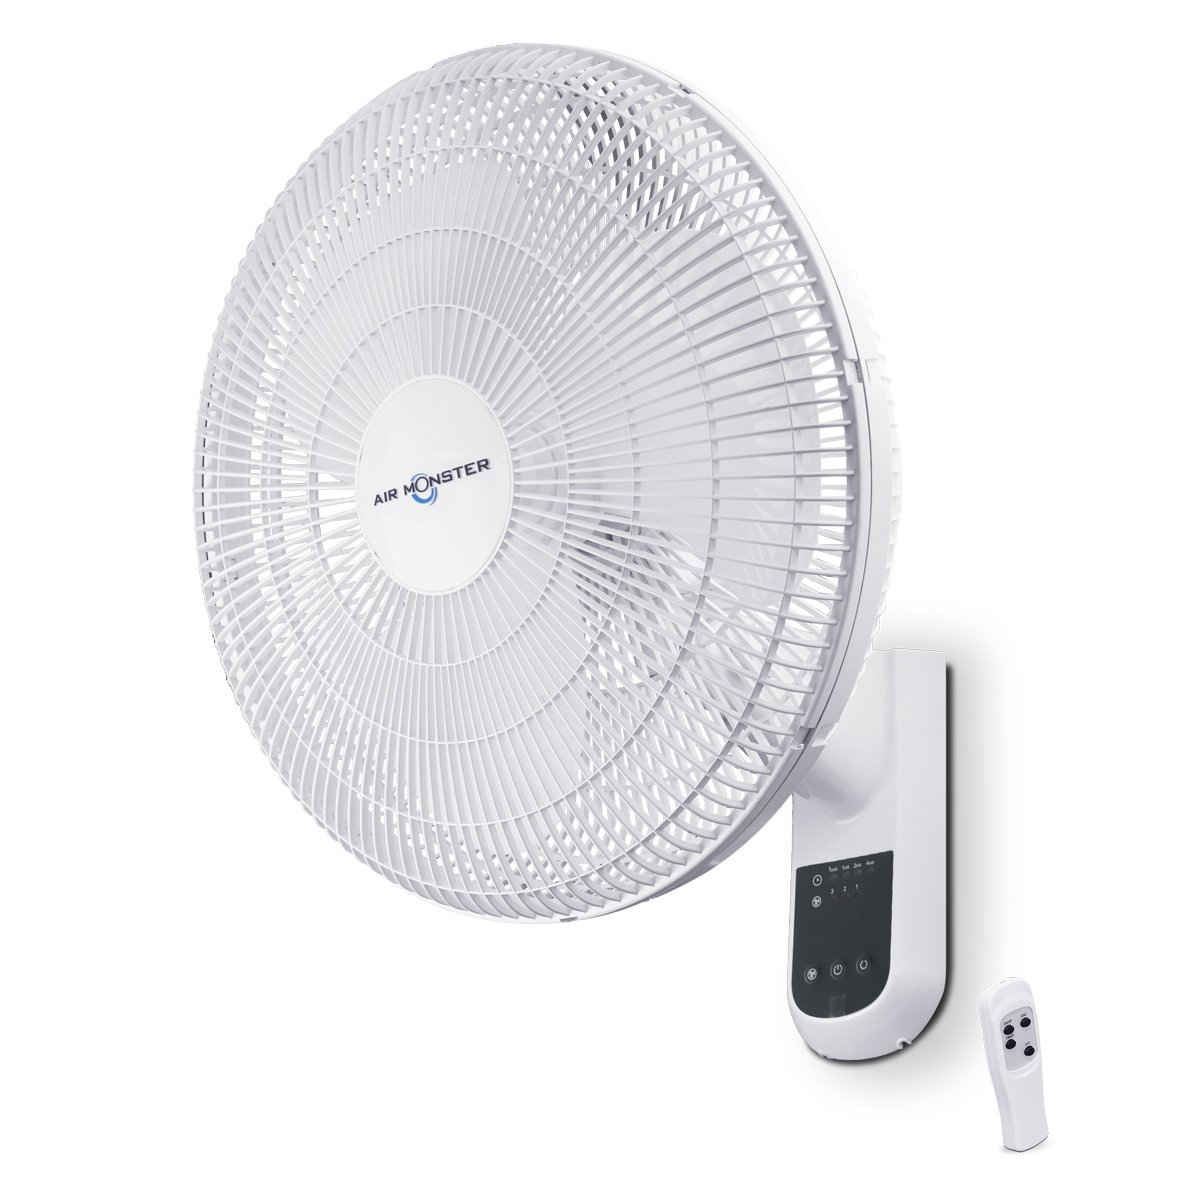 Air Monster Wall Mount Fan - 16 Inch | Remote Control Wall Fan with 90 Degree Oscillation, 3 Speed Settings, Adjustable Tilt - ETL Listed, White